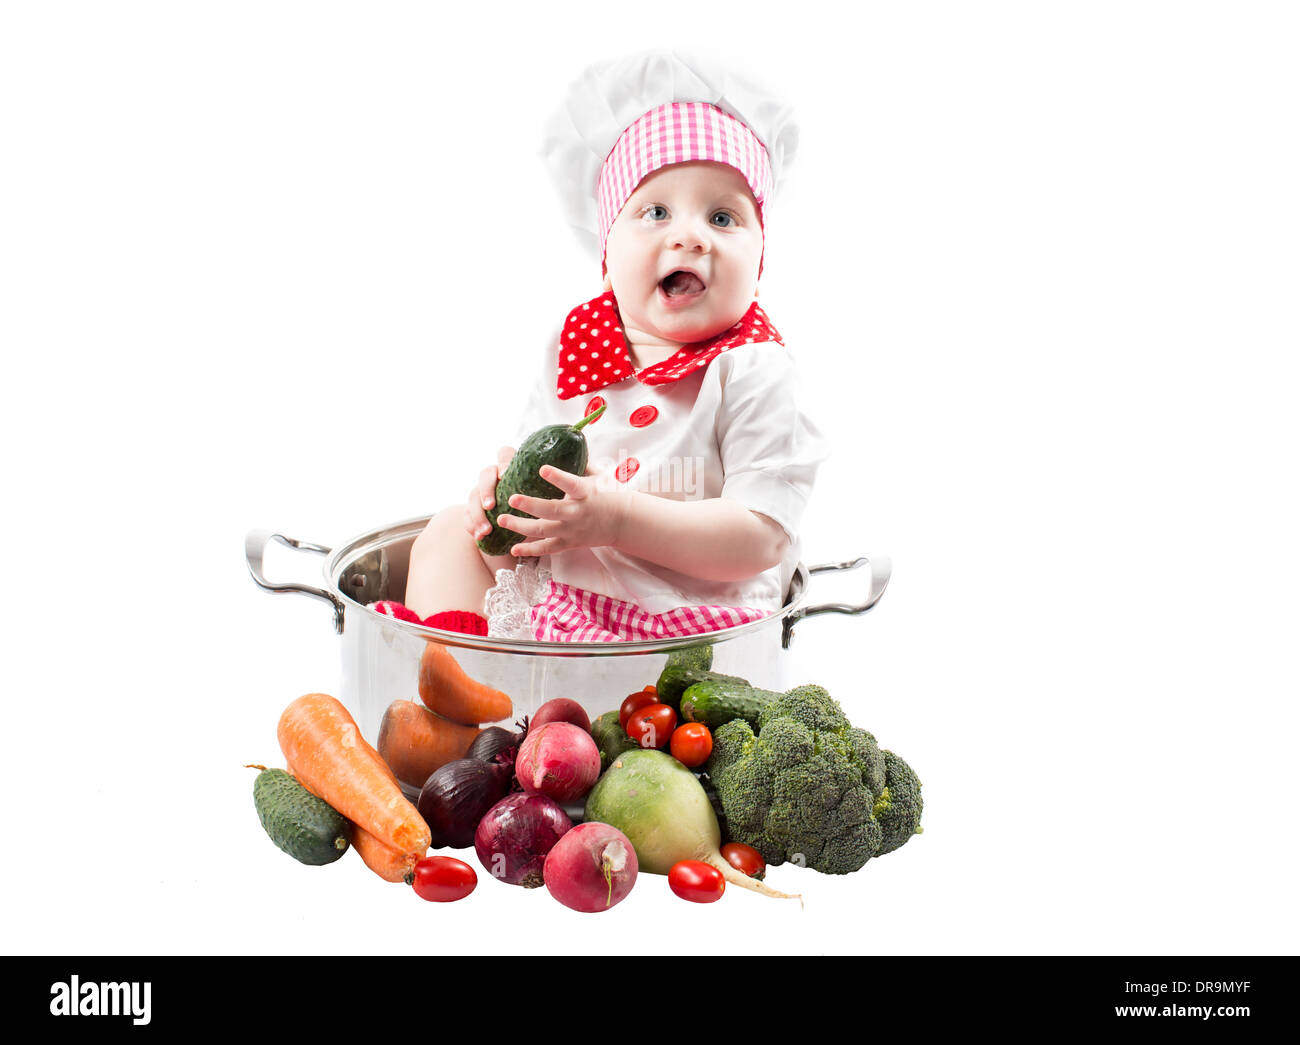 0ed0f9c8b8c Baby cook girl wearing chef hat with fresh vegetables and fruits. Use it for  a child